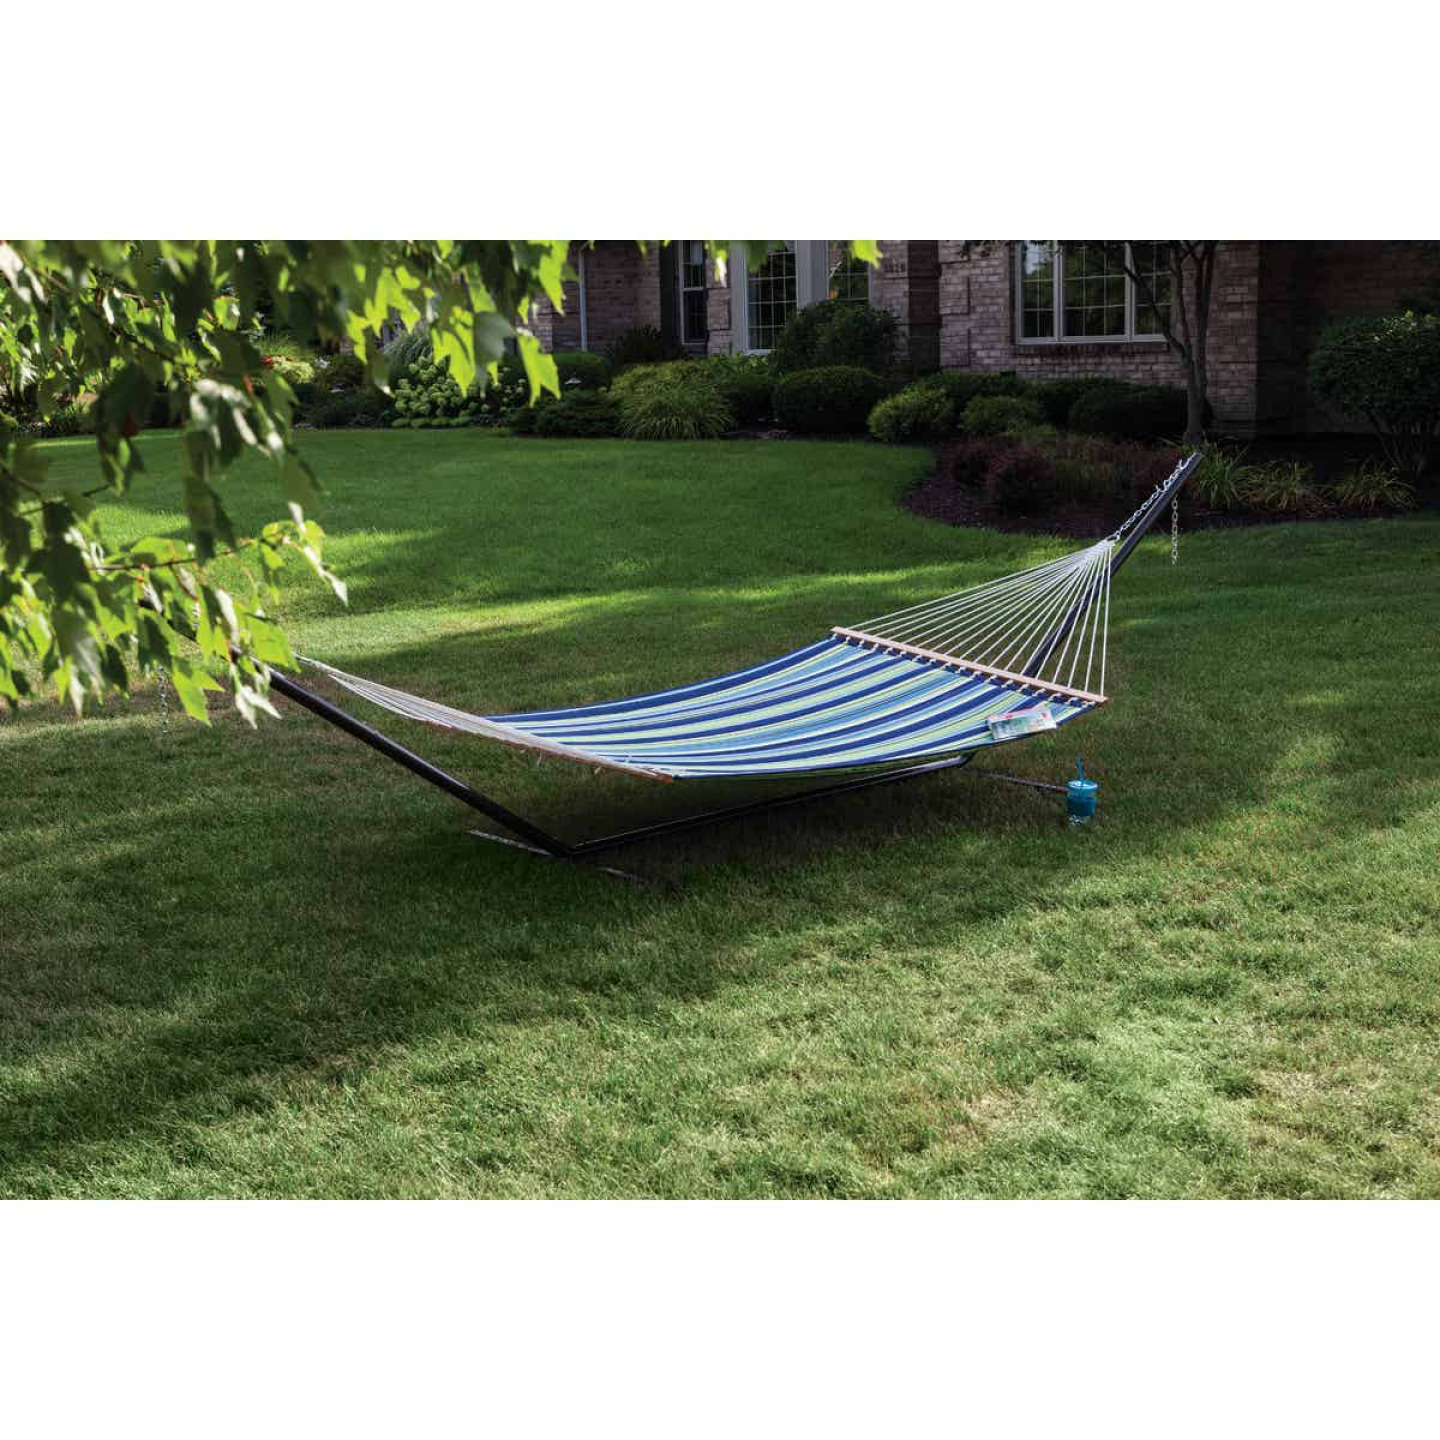 Castaway Duracord Blue & Green Striped Quilted Hammock Image 3